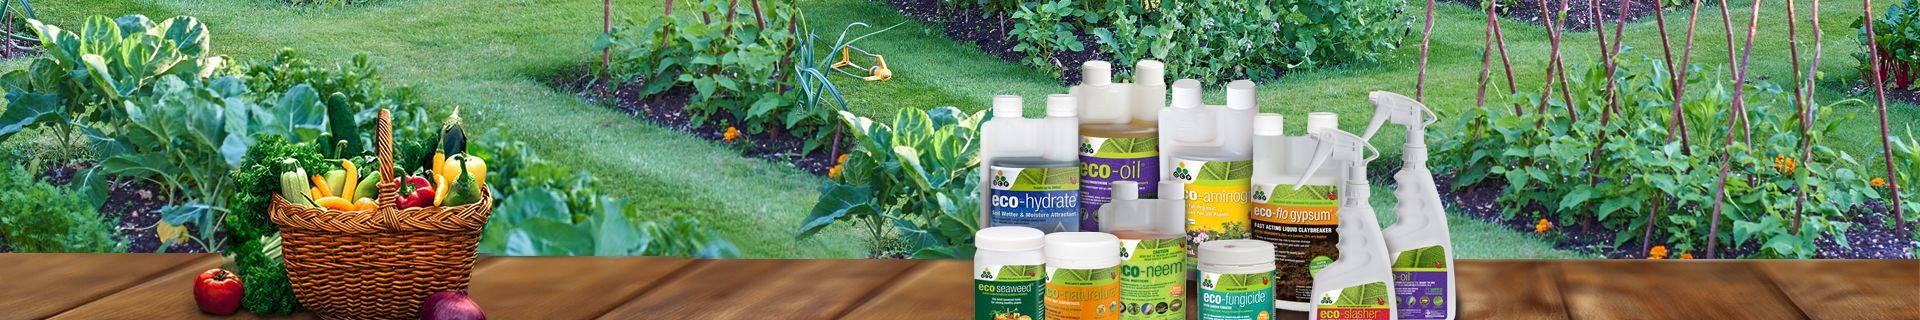 Garden with bottles of organic fertiliser and insecticides.